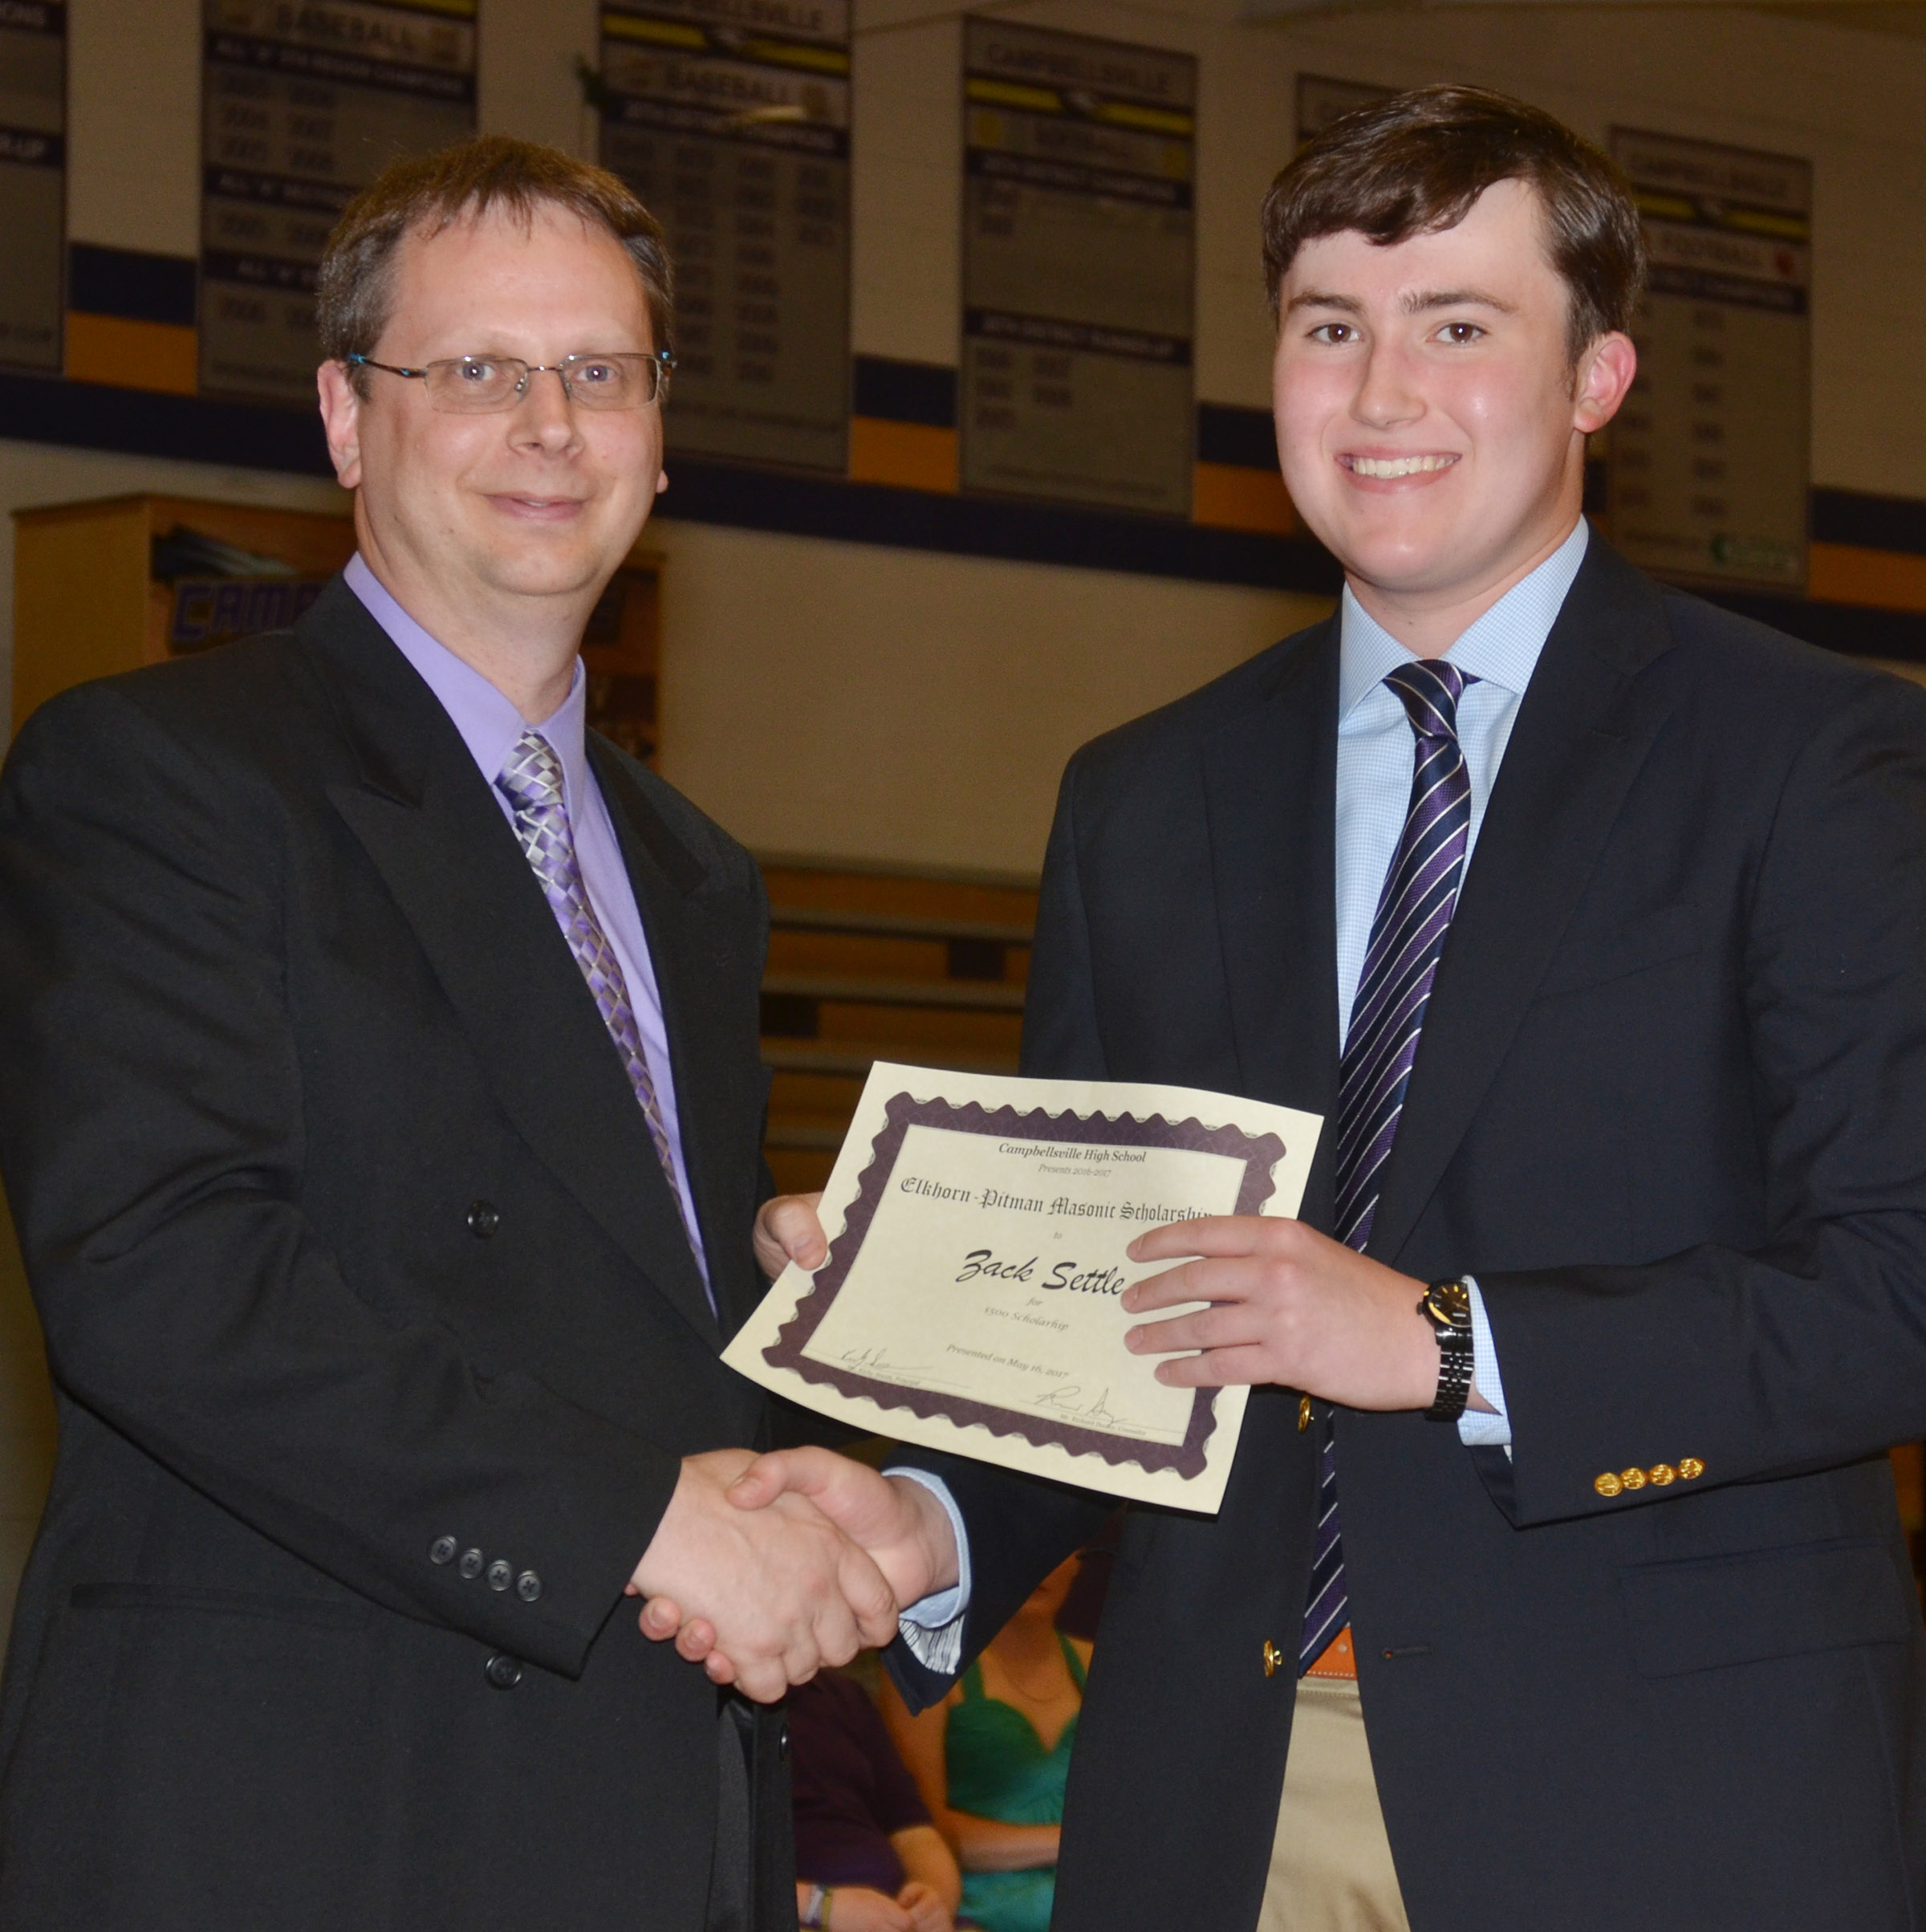 Zack Settle receives the Elkhorn-Pittman Masonic Lodge scholarship. He is pictured with guidance counselor Richard Dooley.